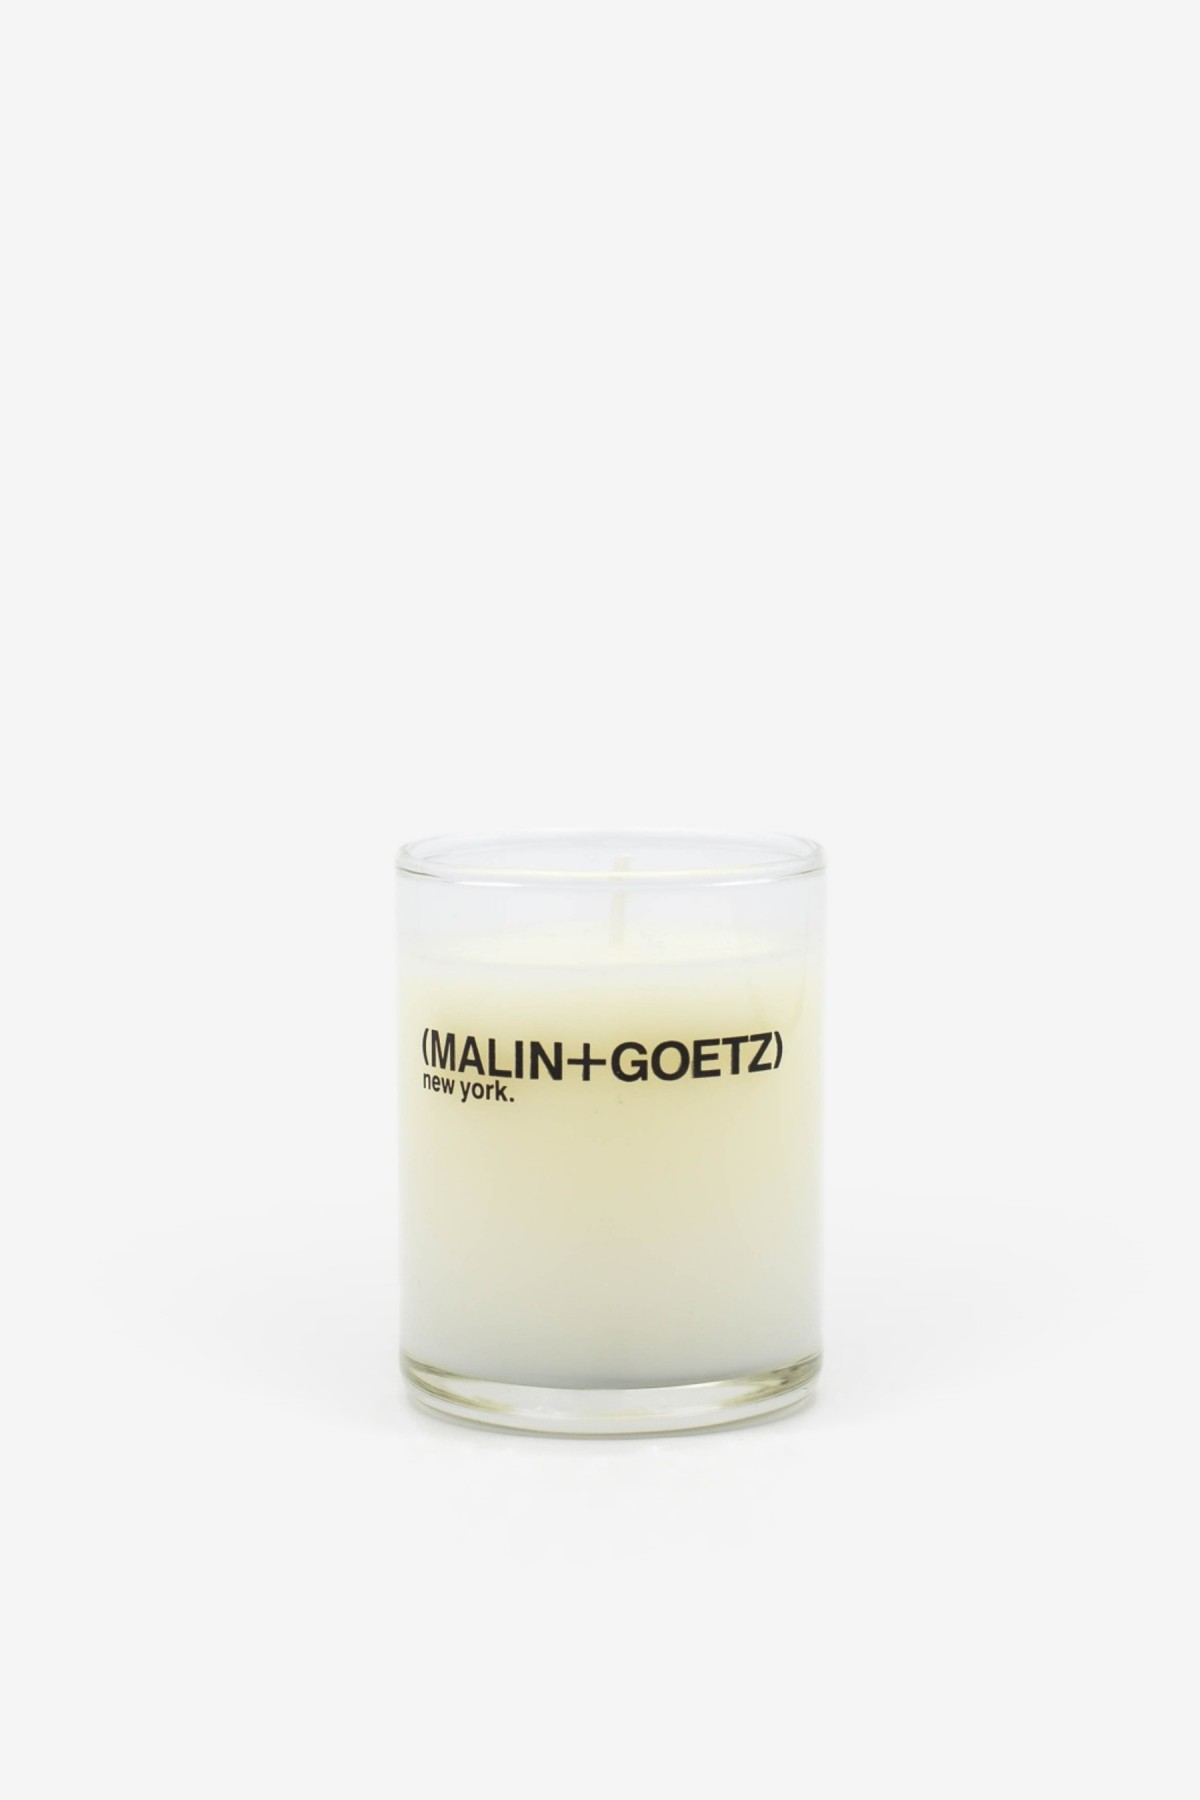 Malin+Goetz Mojito Votive 67g in